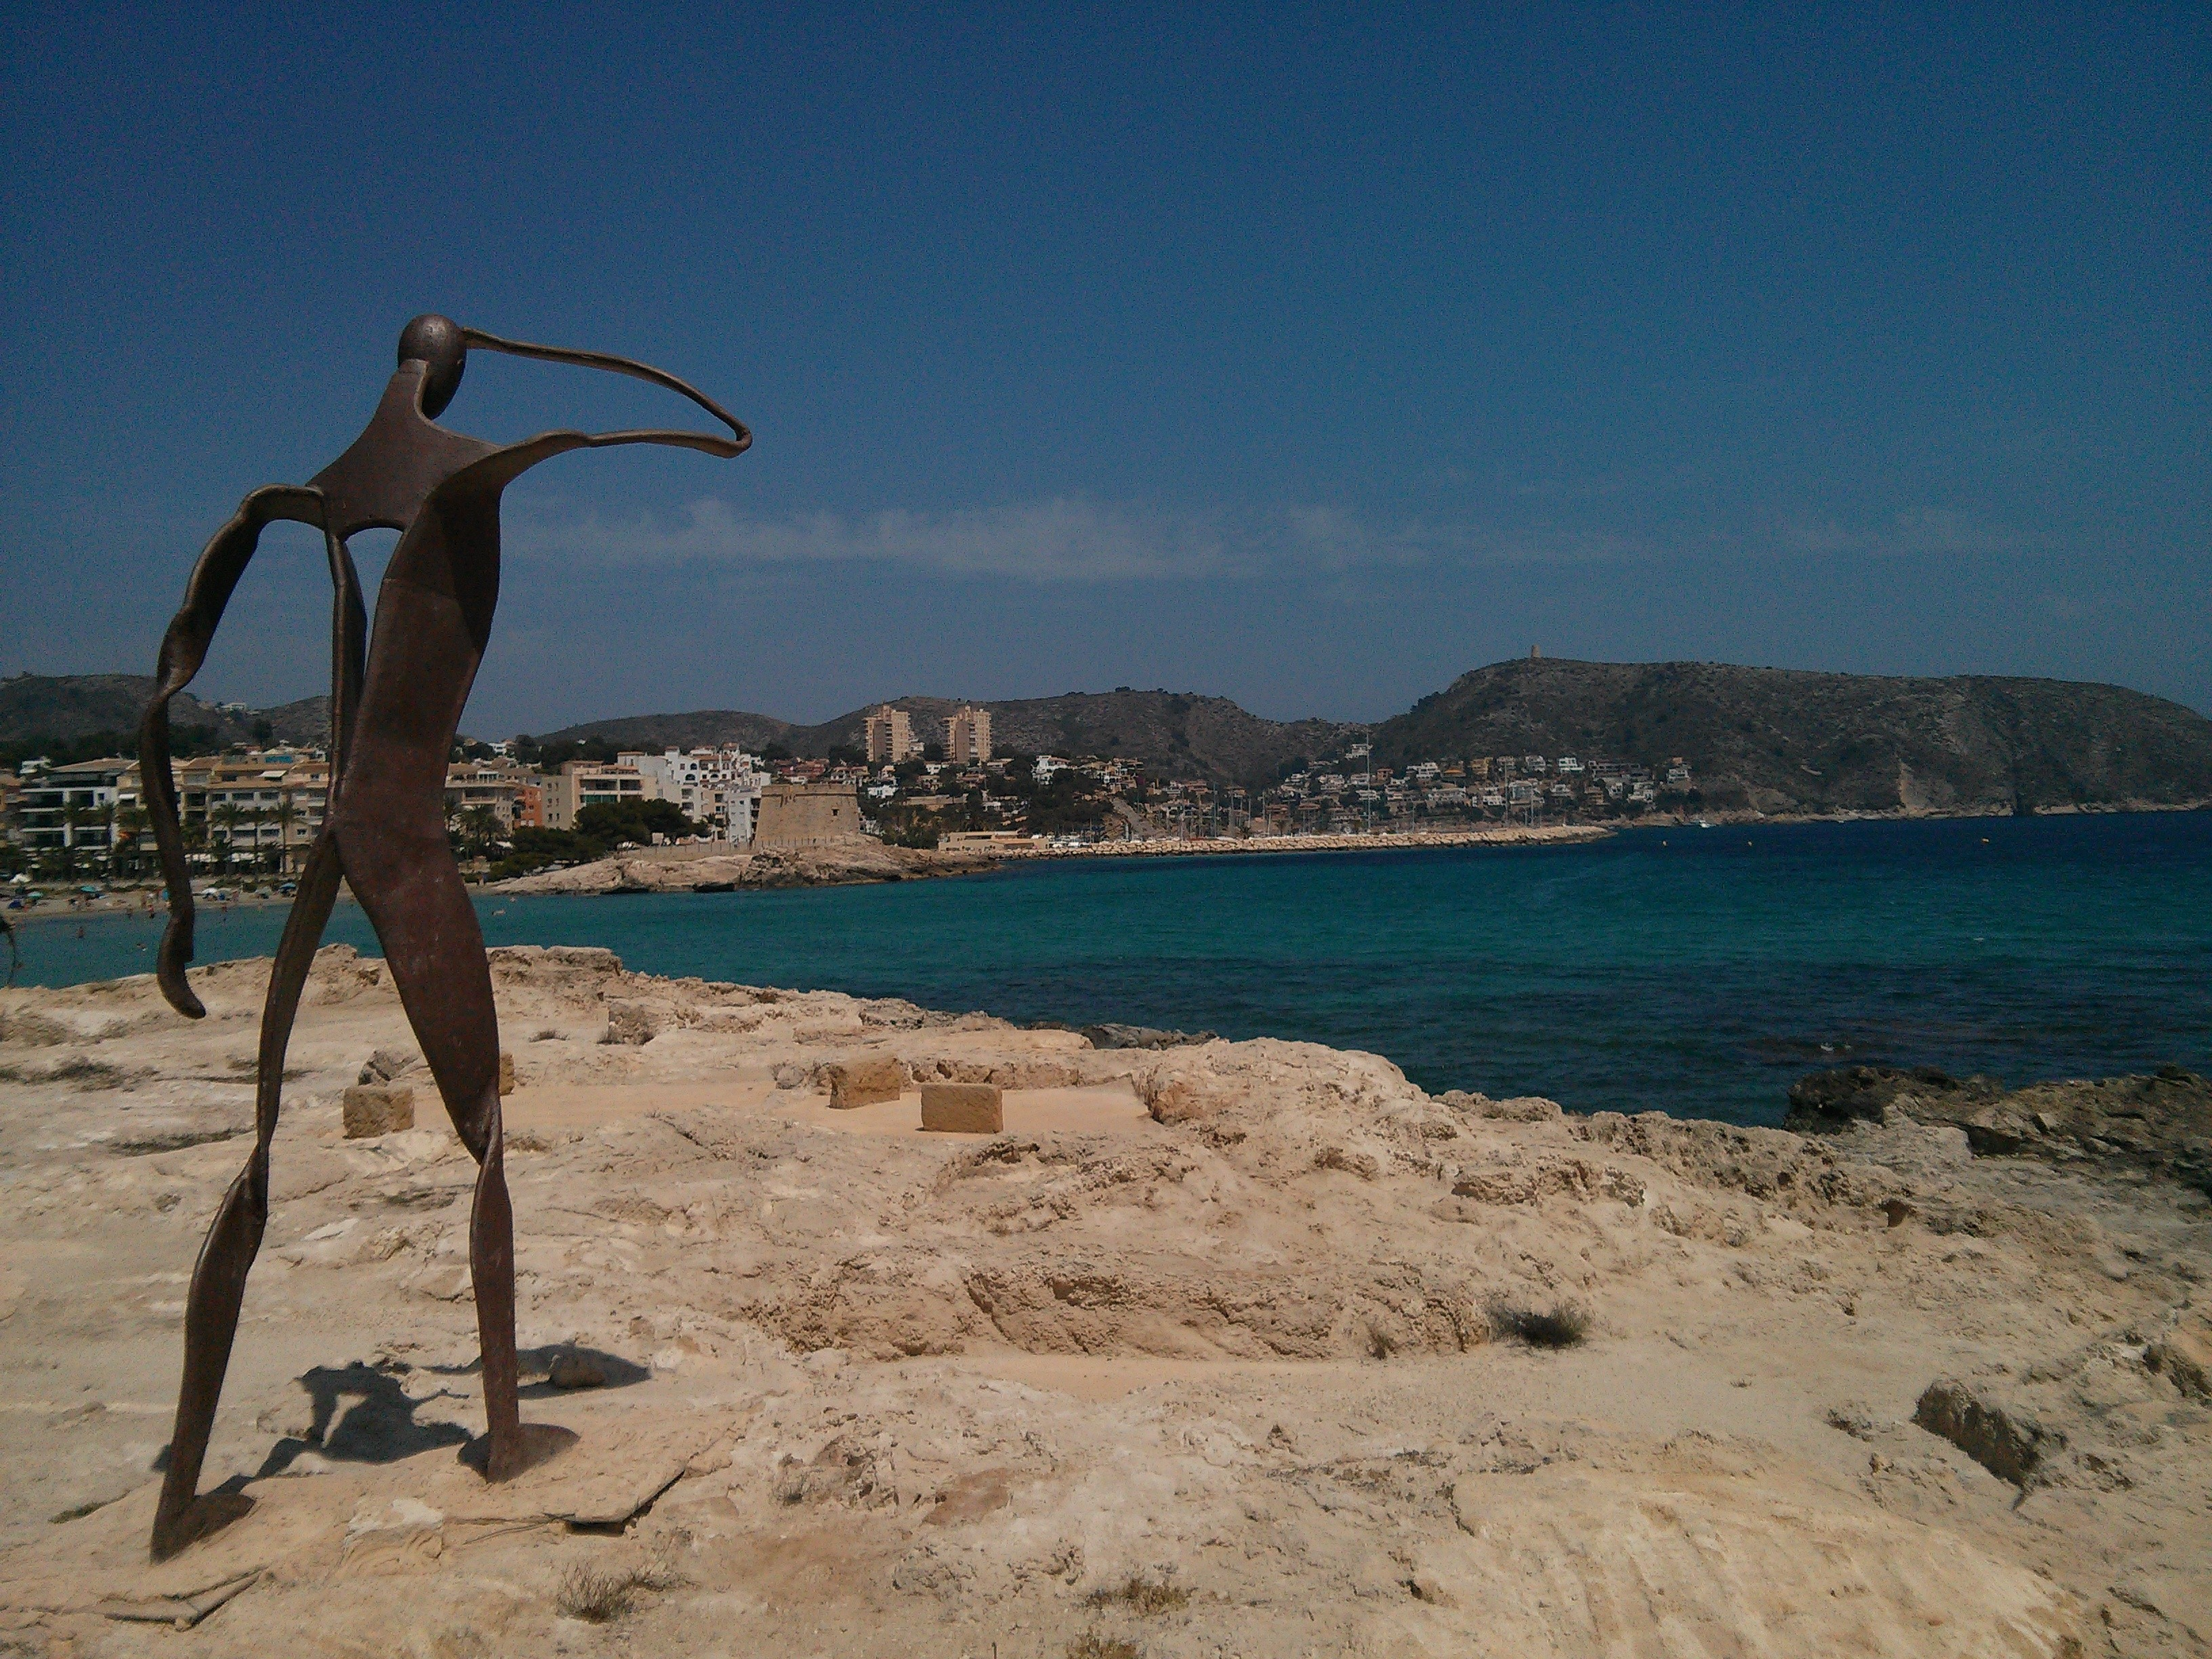 Statue looking out over Moraira, Costa Blanca